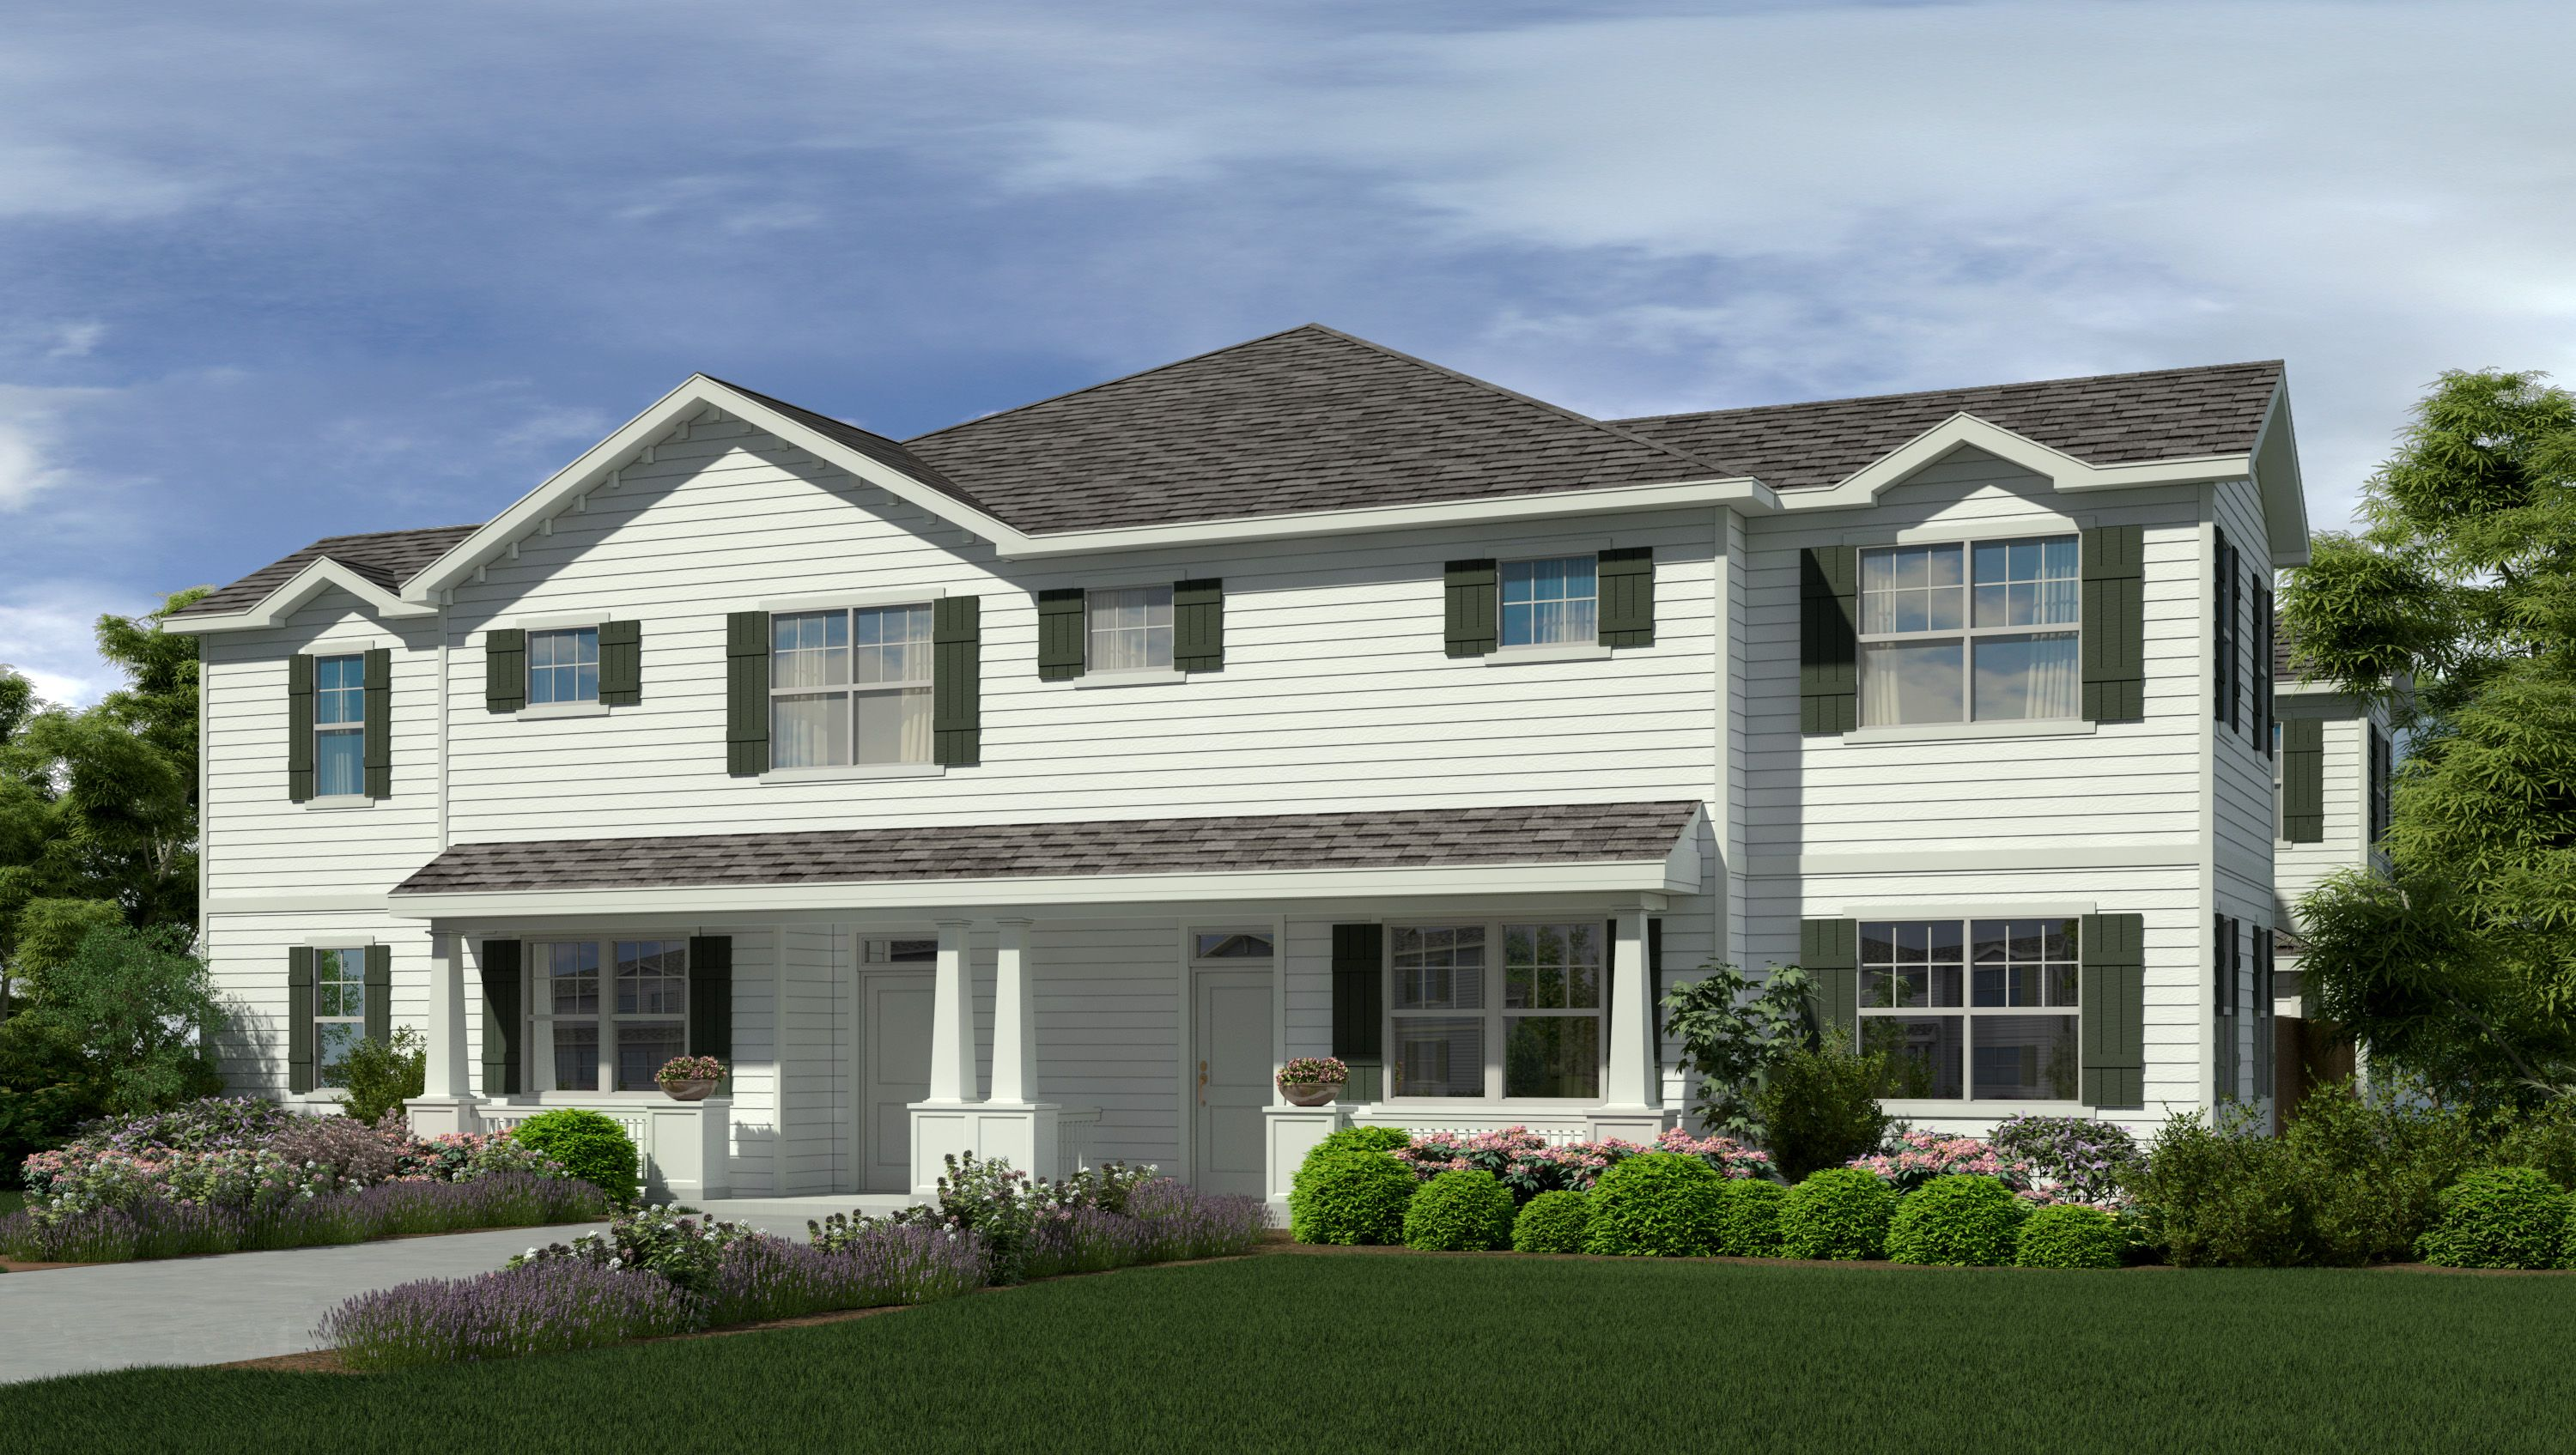 Crofton Your Future Home 2 3 Bedroom Floorplans Presales Start This Summer Thedragascompanies House Styles Townhouse New Homes